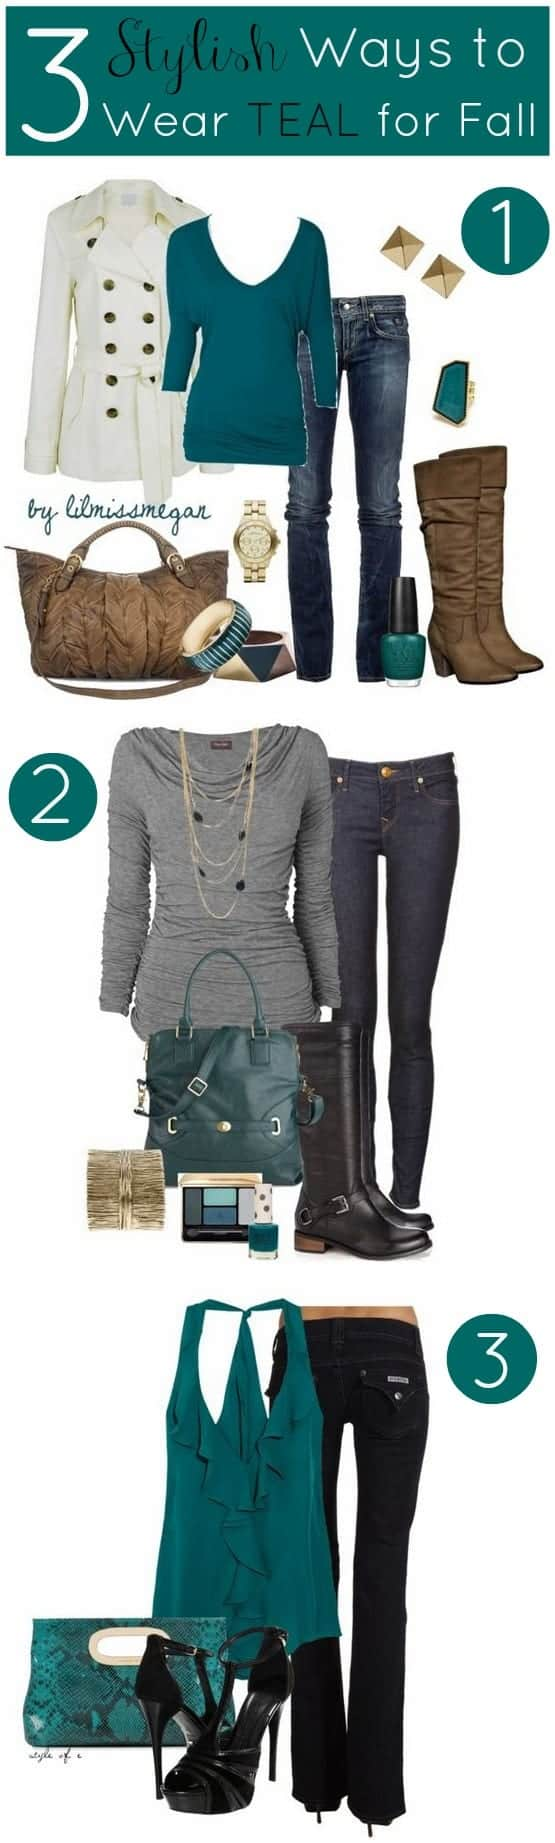 teal fall color trend